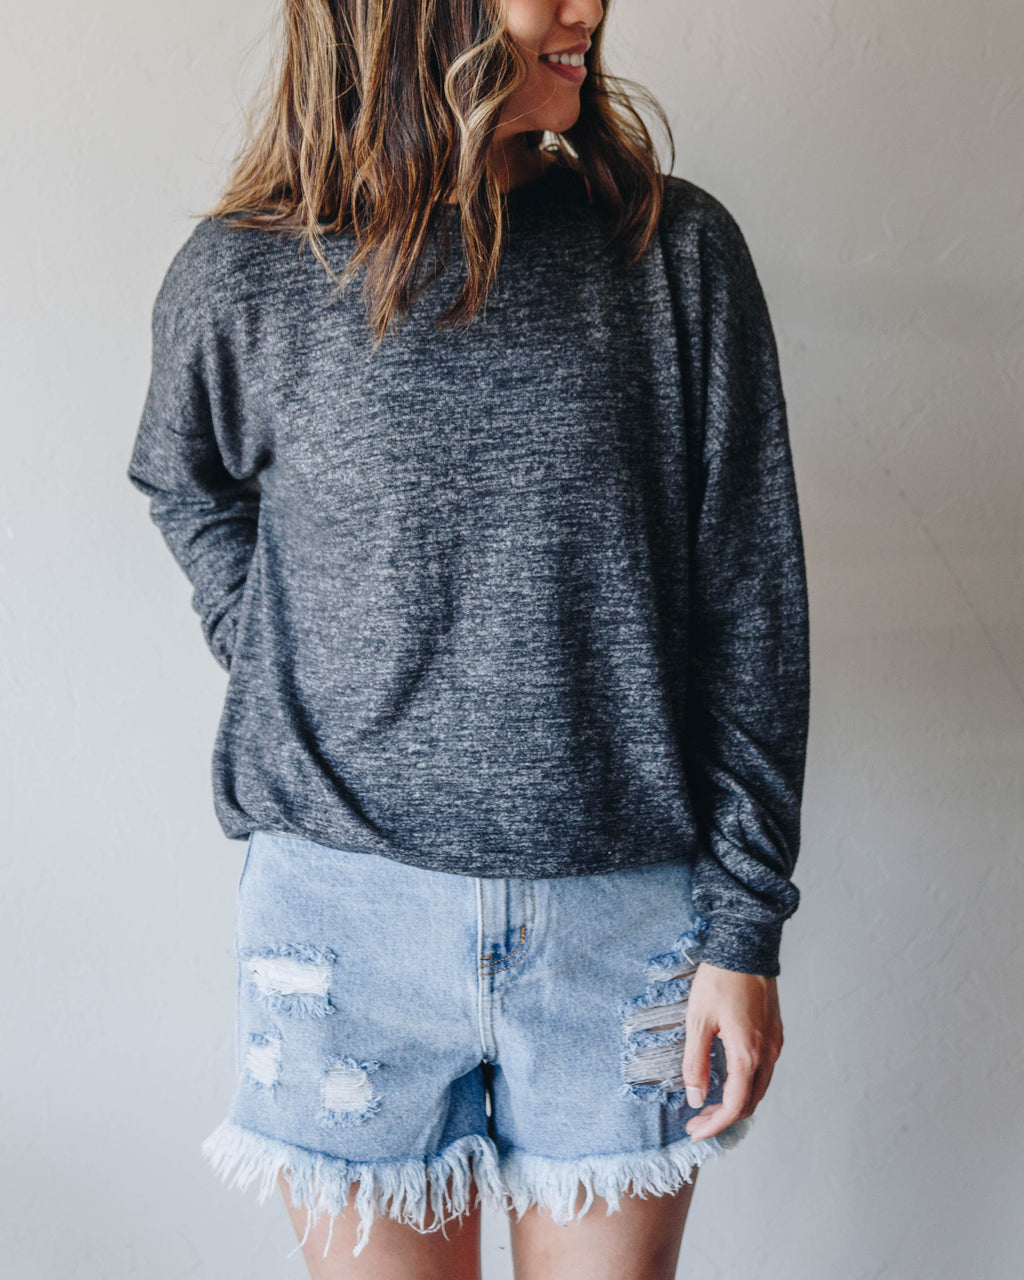 Essential Lounge Top - Charcoal